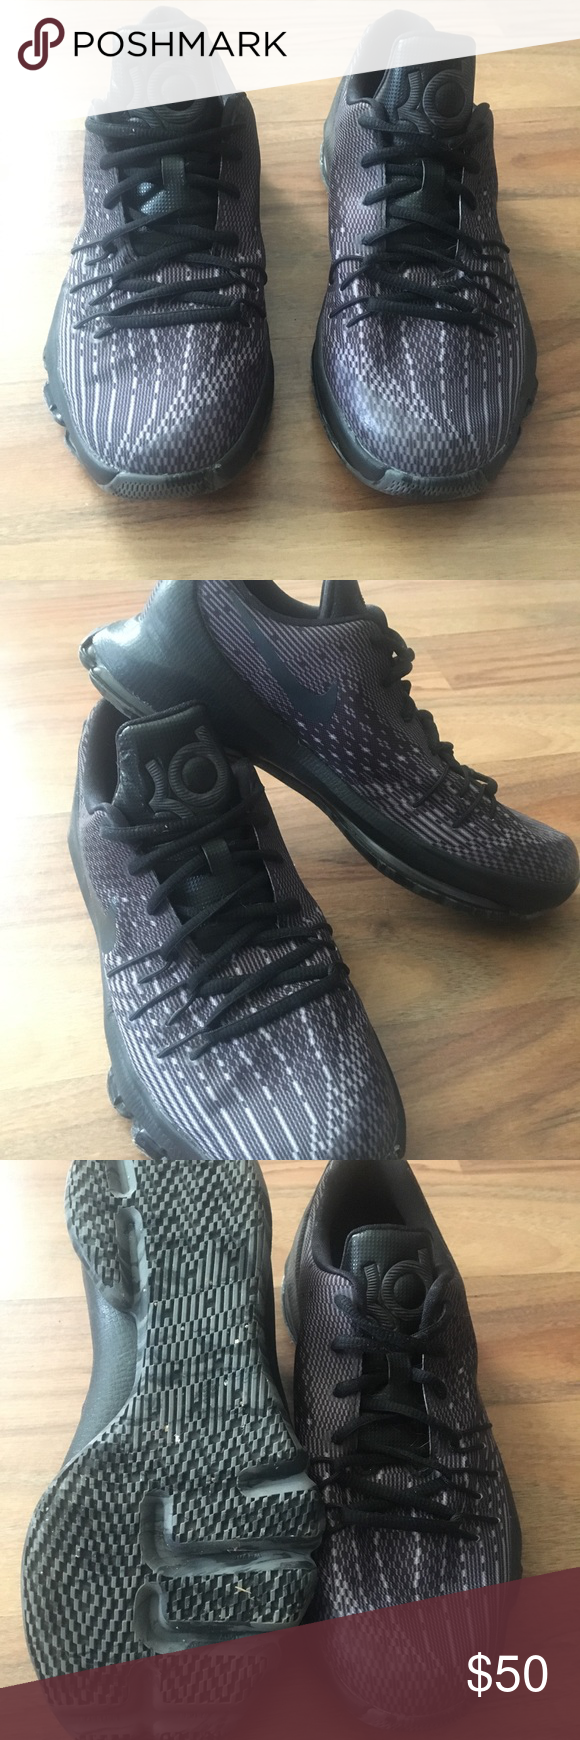 "competitive price 538b5 2520e Nike KD ""Blackout"" Kevin Durant Shoes Very clean pair of Kevin Durant Nike  Shoes. Only worn once. Nike Shoes Athletic Shoes"